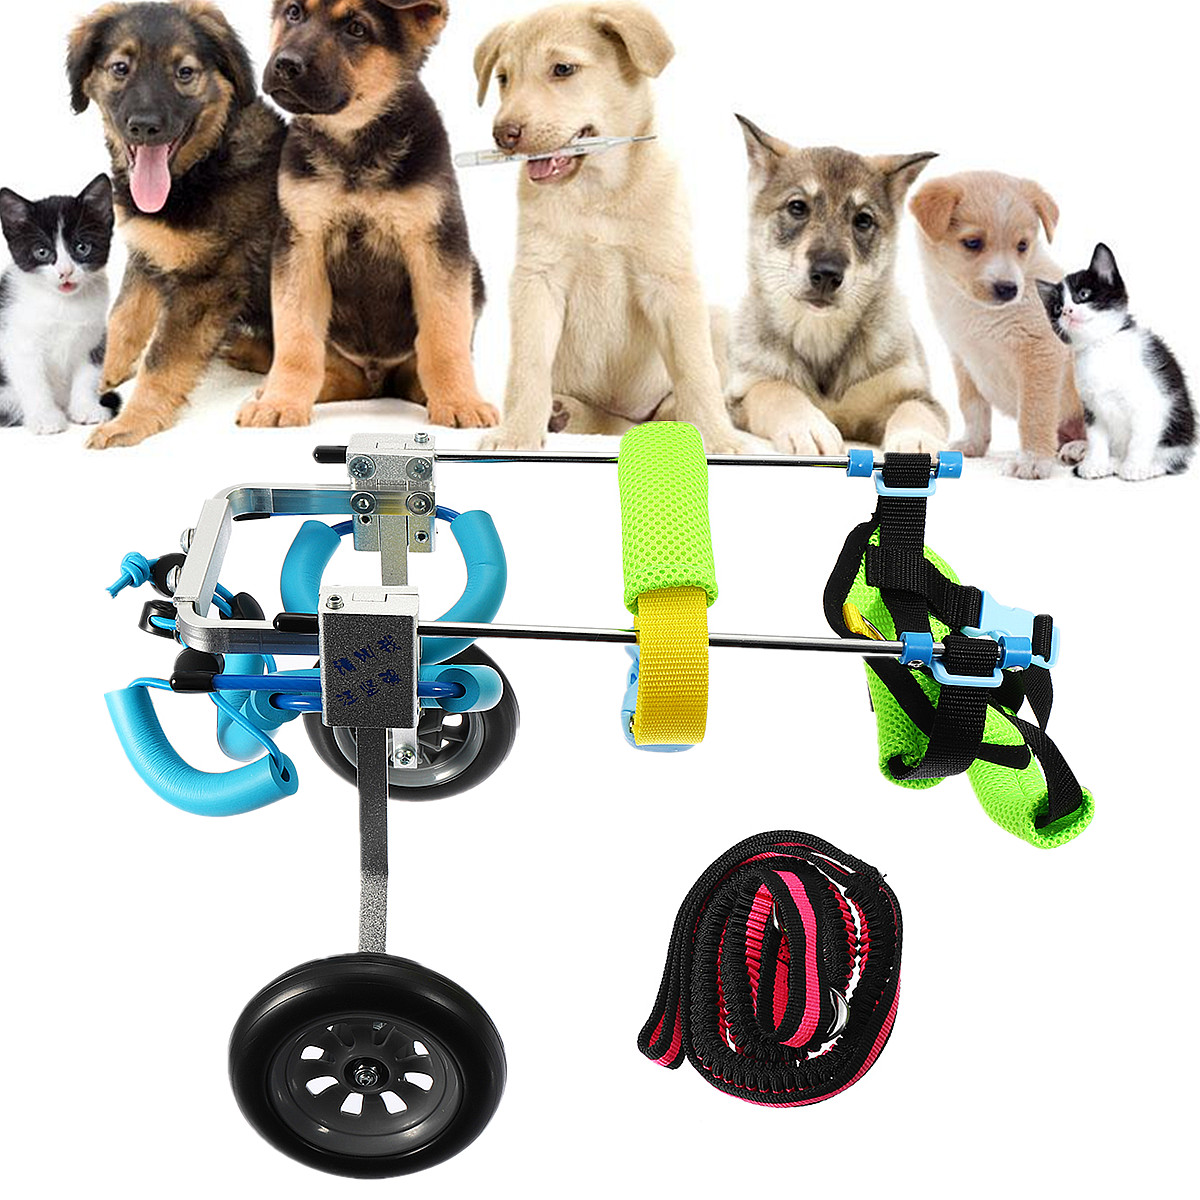 Pet Wheelchair Walk Traction Rope Cart Kit Light Portable Accessories Adjusted For Handicapped Cat Dog Doggie Puppy Taken Apart image